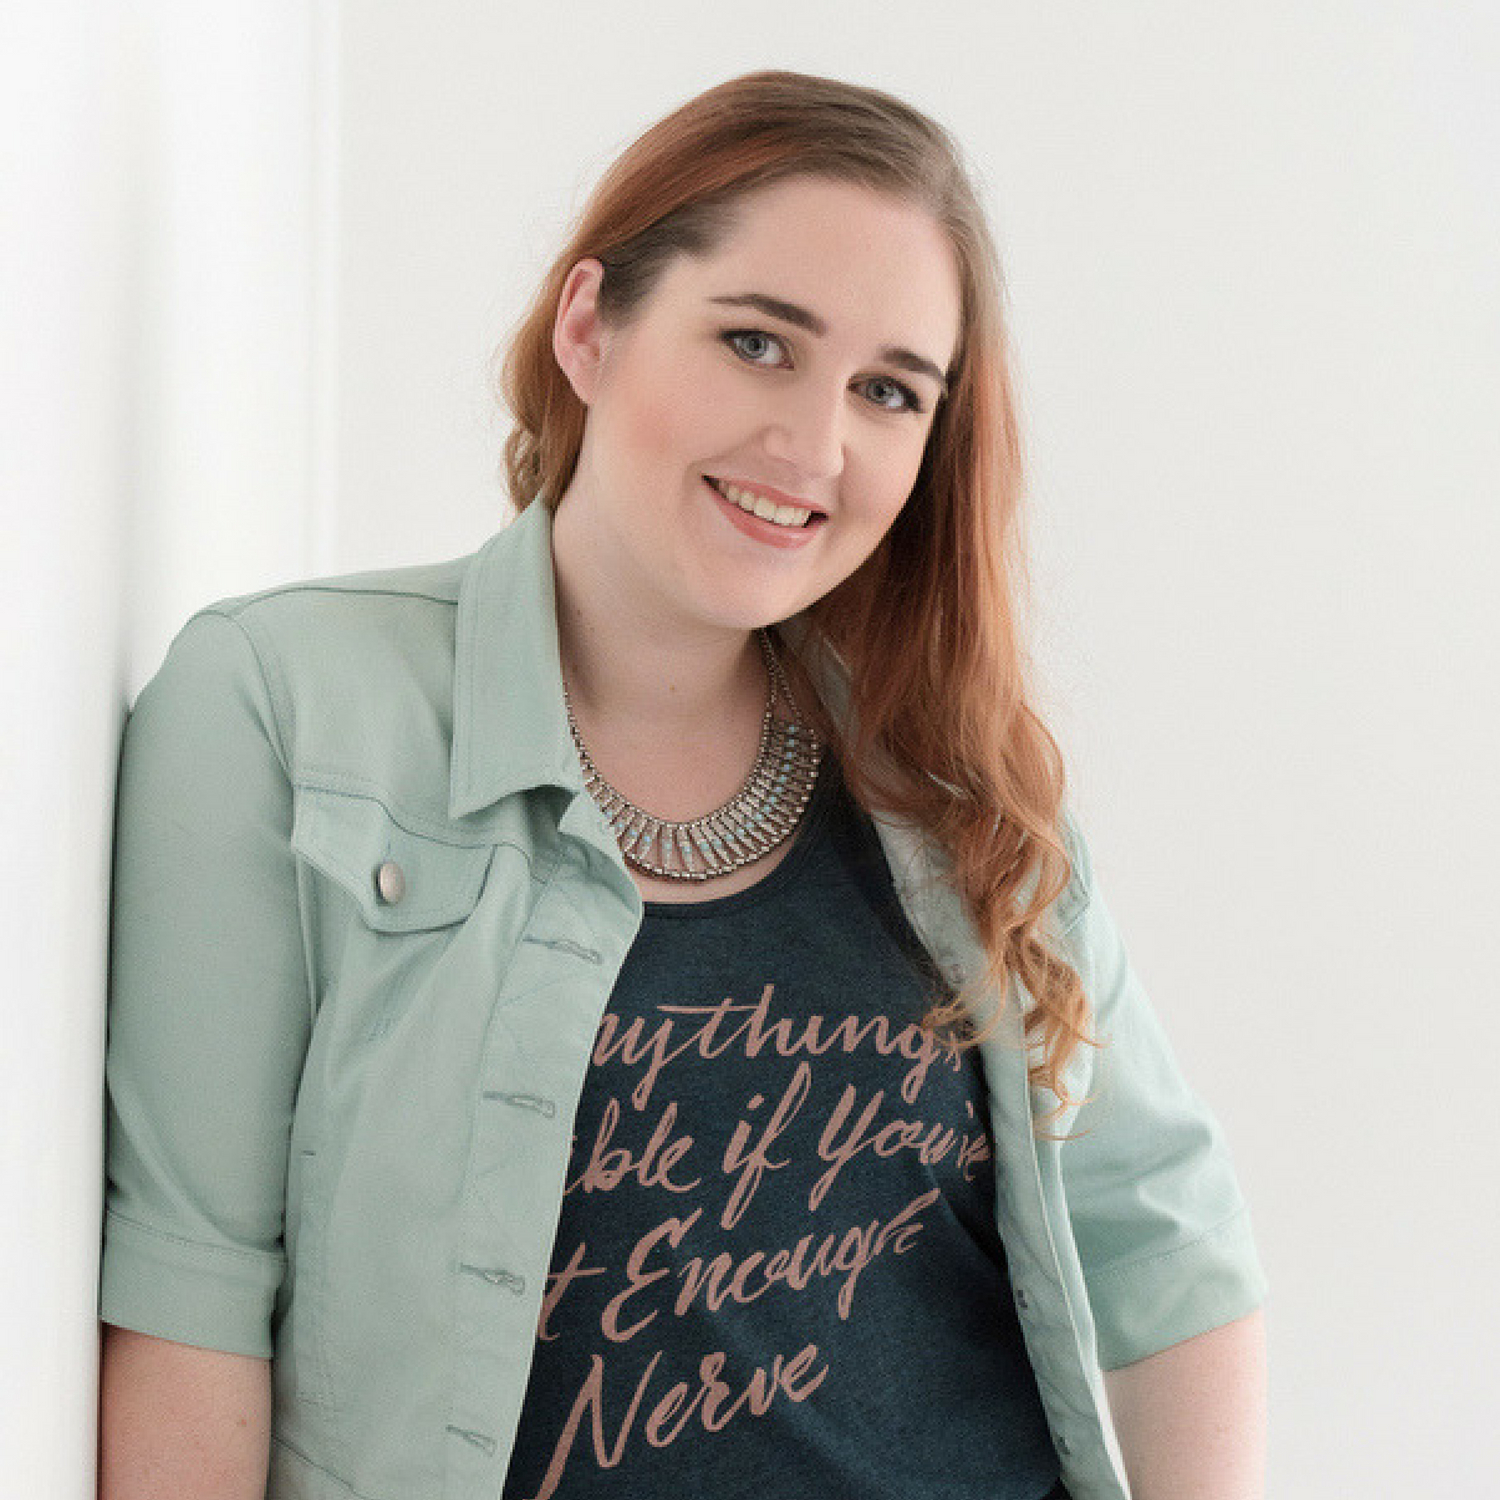 Using Redbubble for Your Product Based Business with Kit Cronk  |  The Strategy Hour